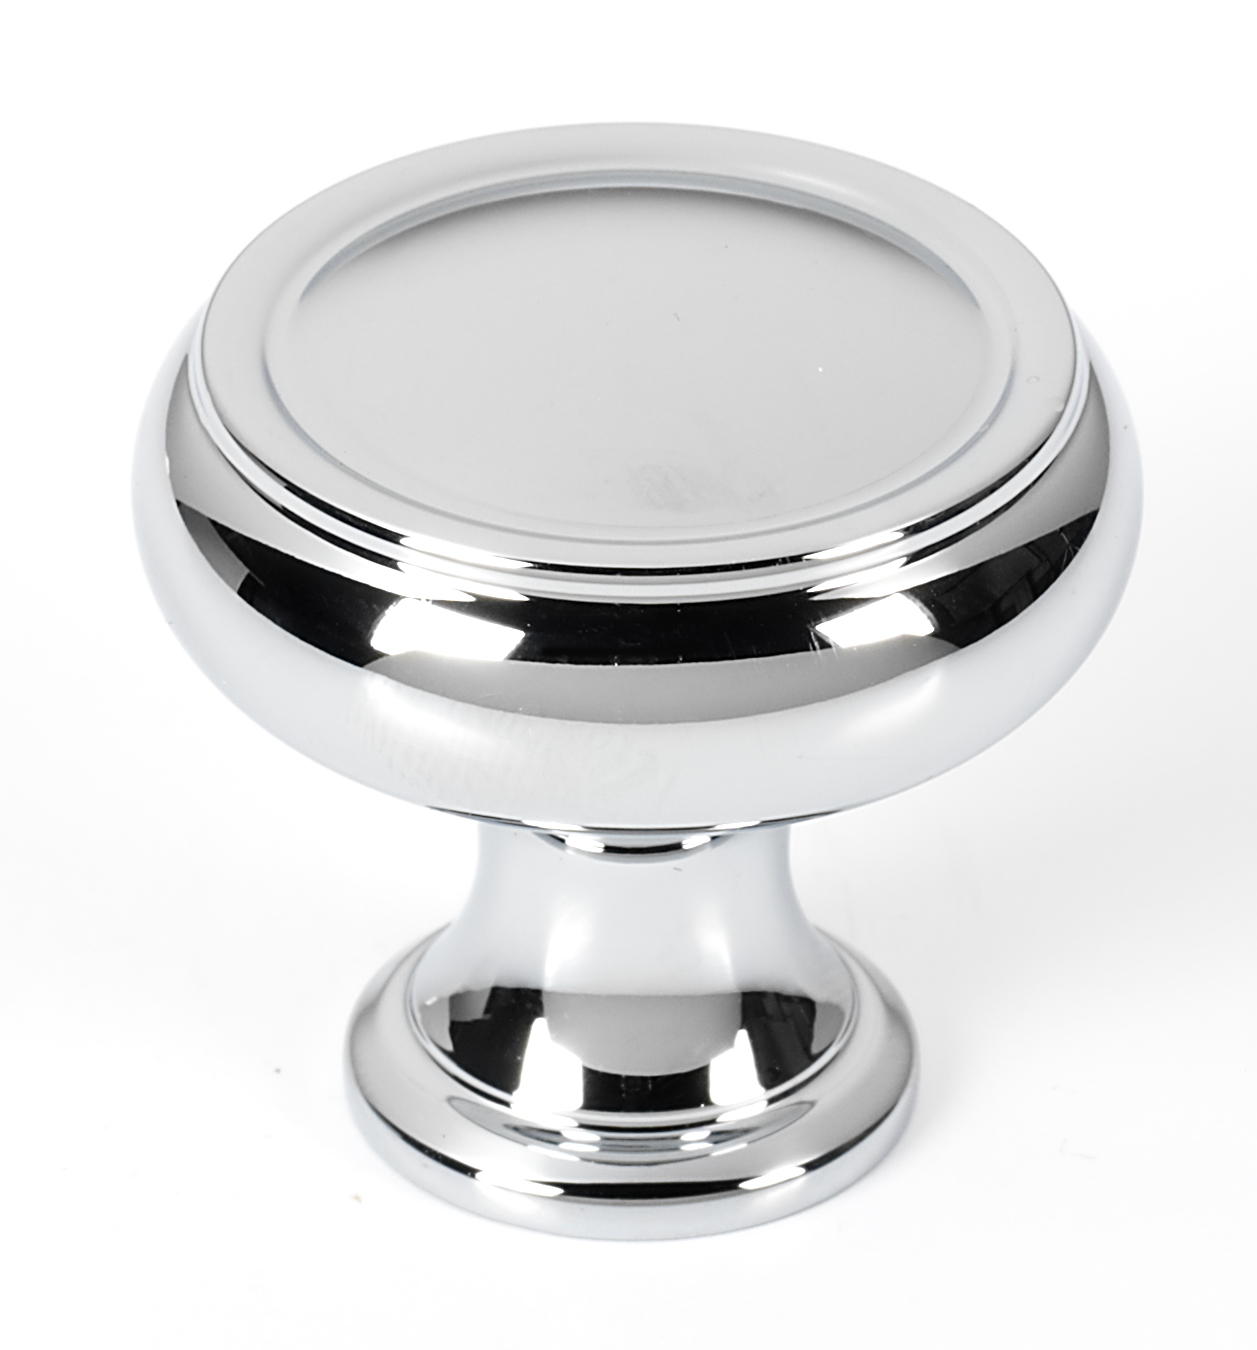 106A626-38-PC Charlie knob 1-1/2in diameter, shown in polished chrome, available in ten finishes.